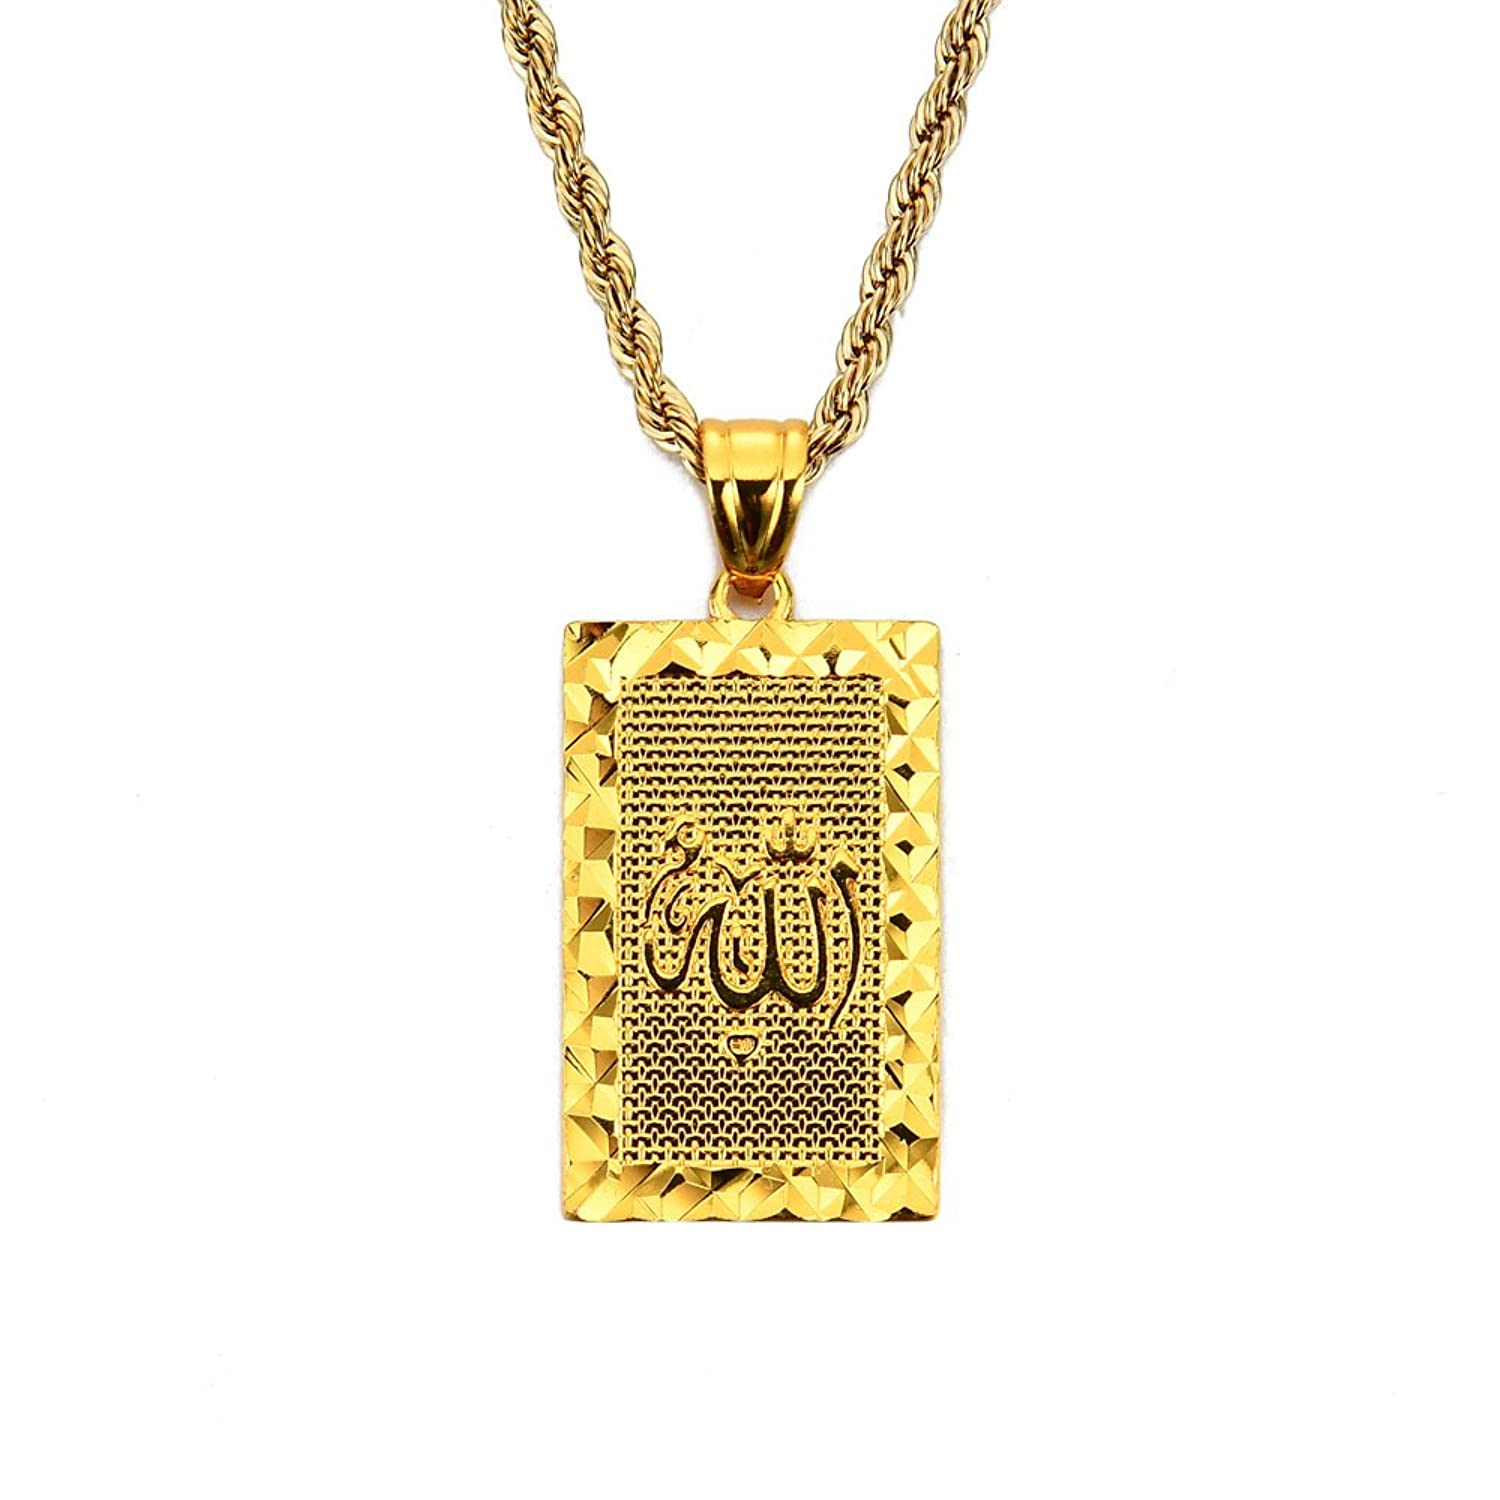 24 inch Middle East Islam Mulsim Allah Small Tag Pendant Necklace Rope Chain